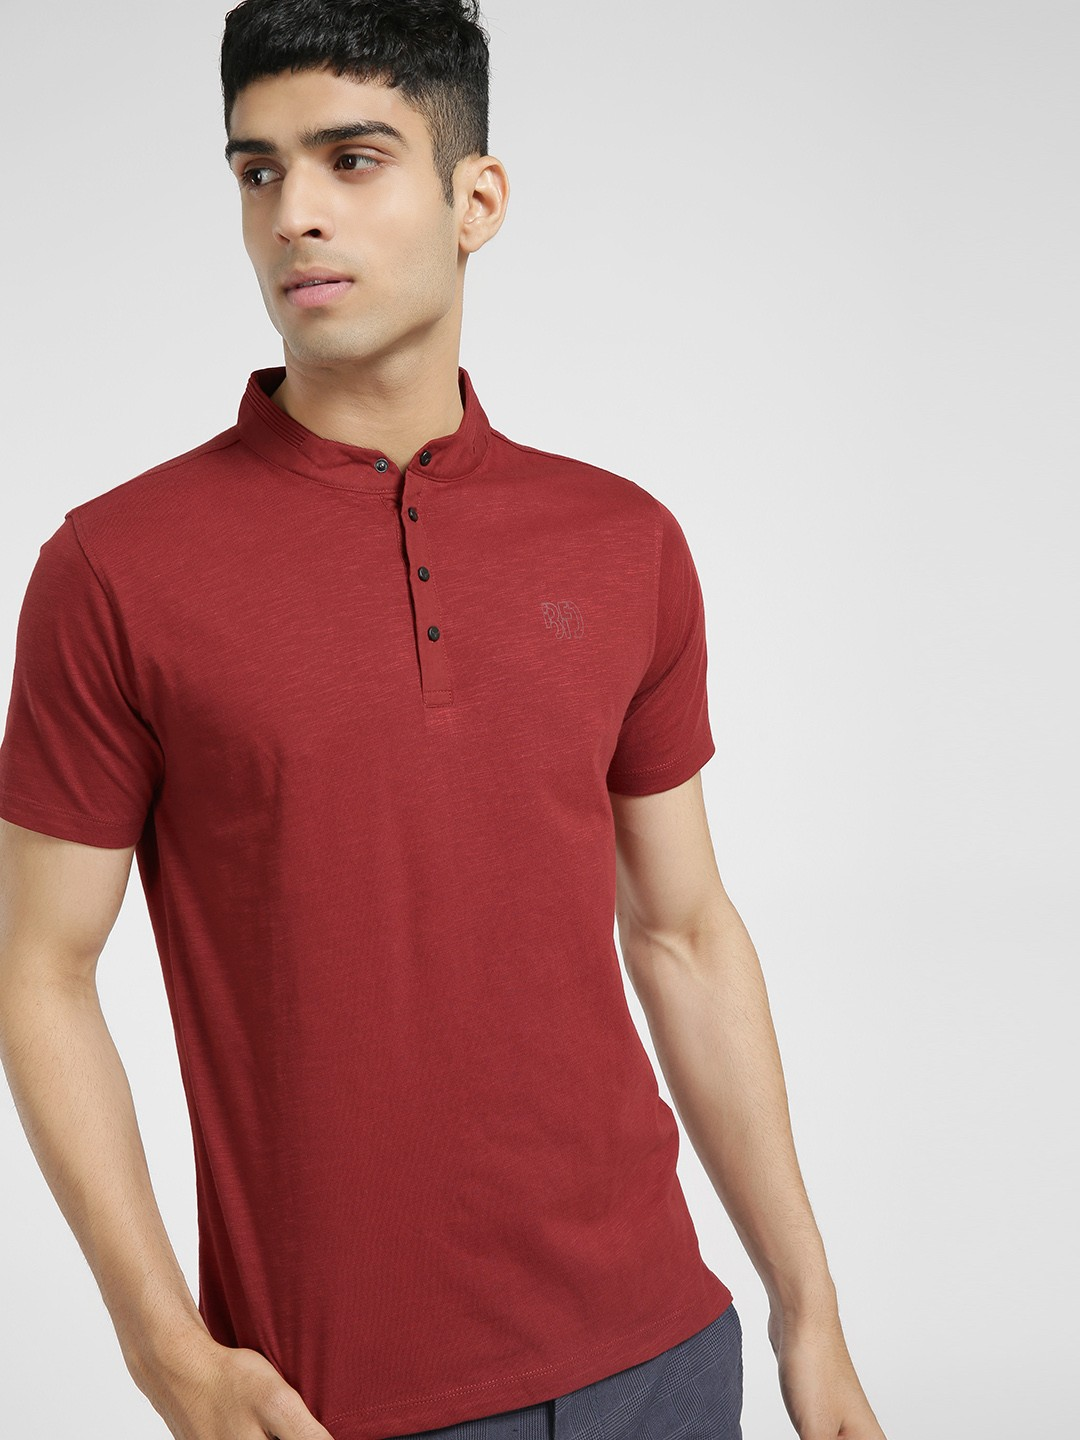 Buffalo MINERAL RED Mandarin Collar Slim T-Shirt 1